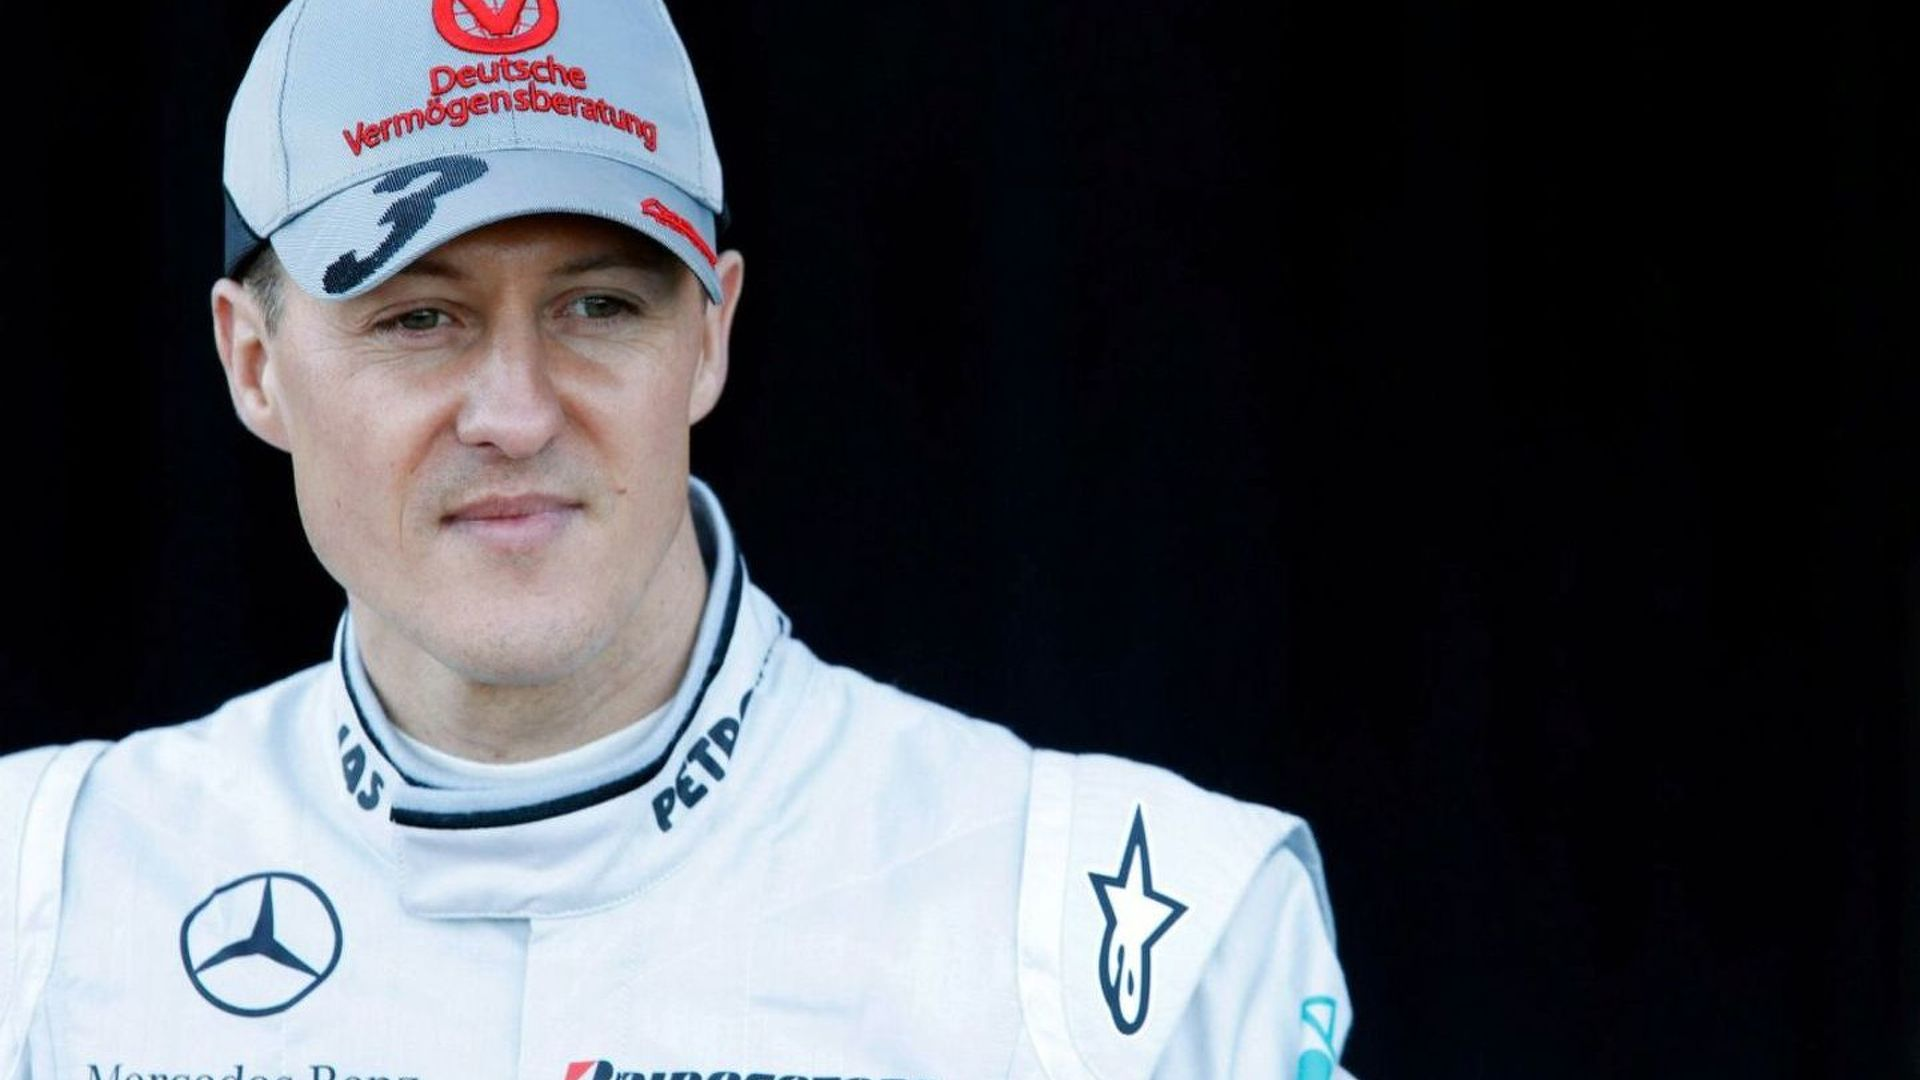 Schumacher admits 'more relaxed' but still 'serious' about F1